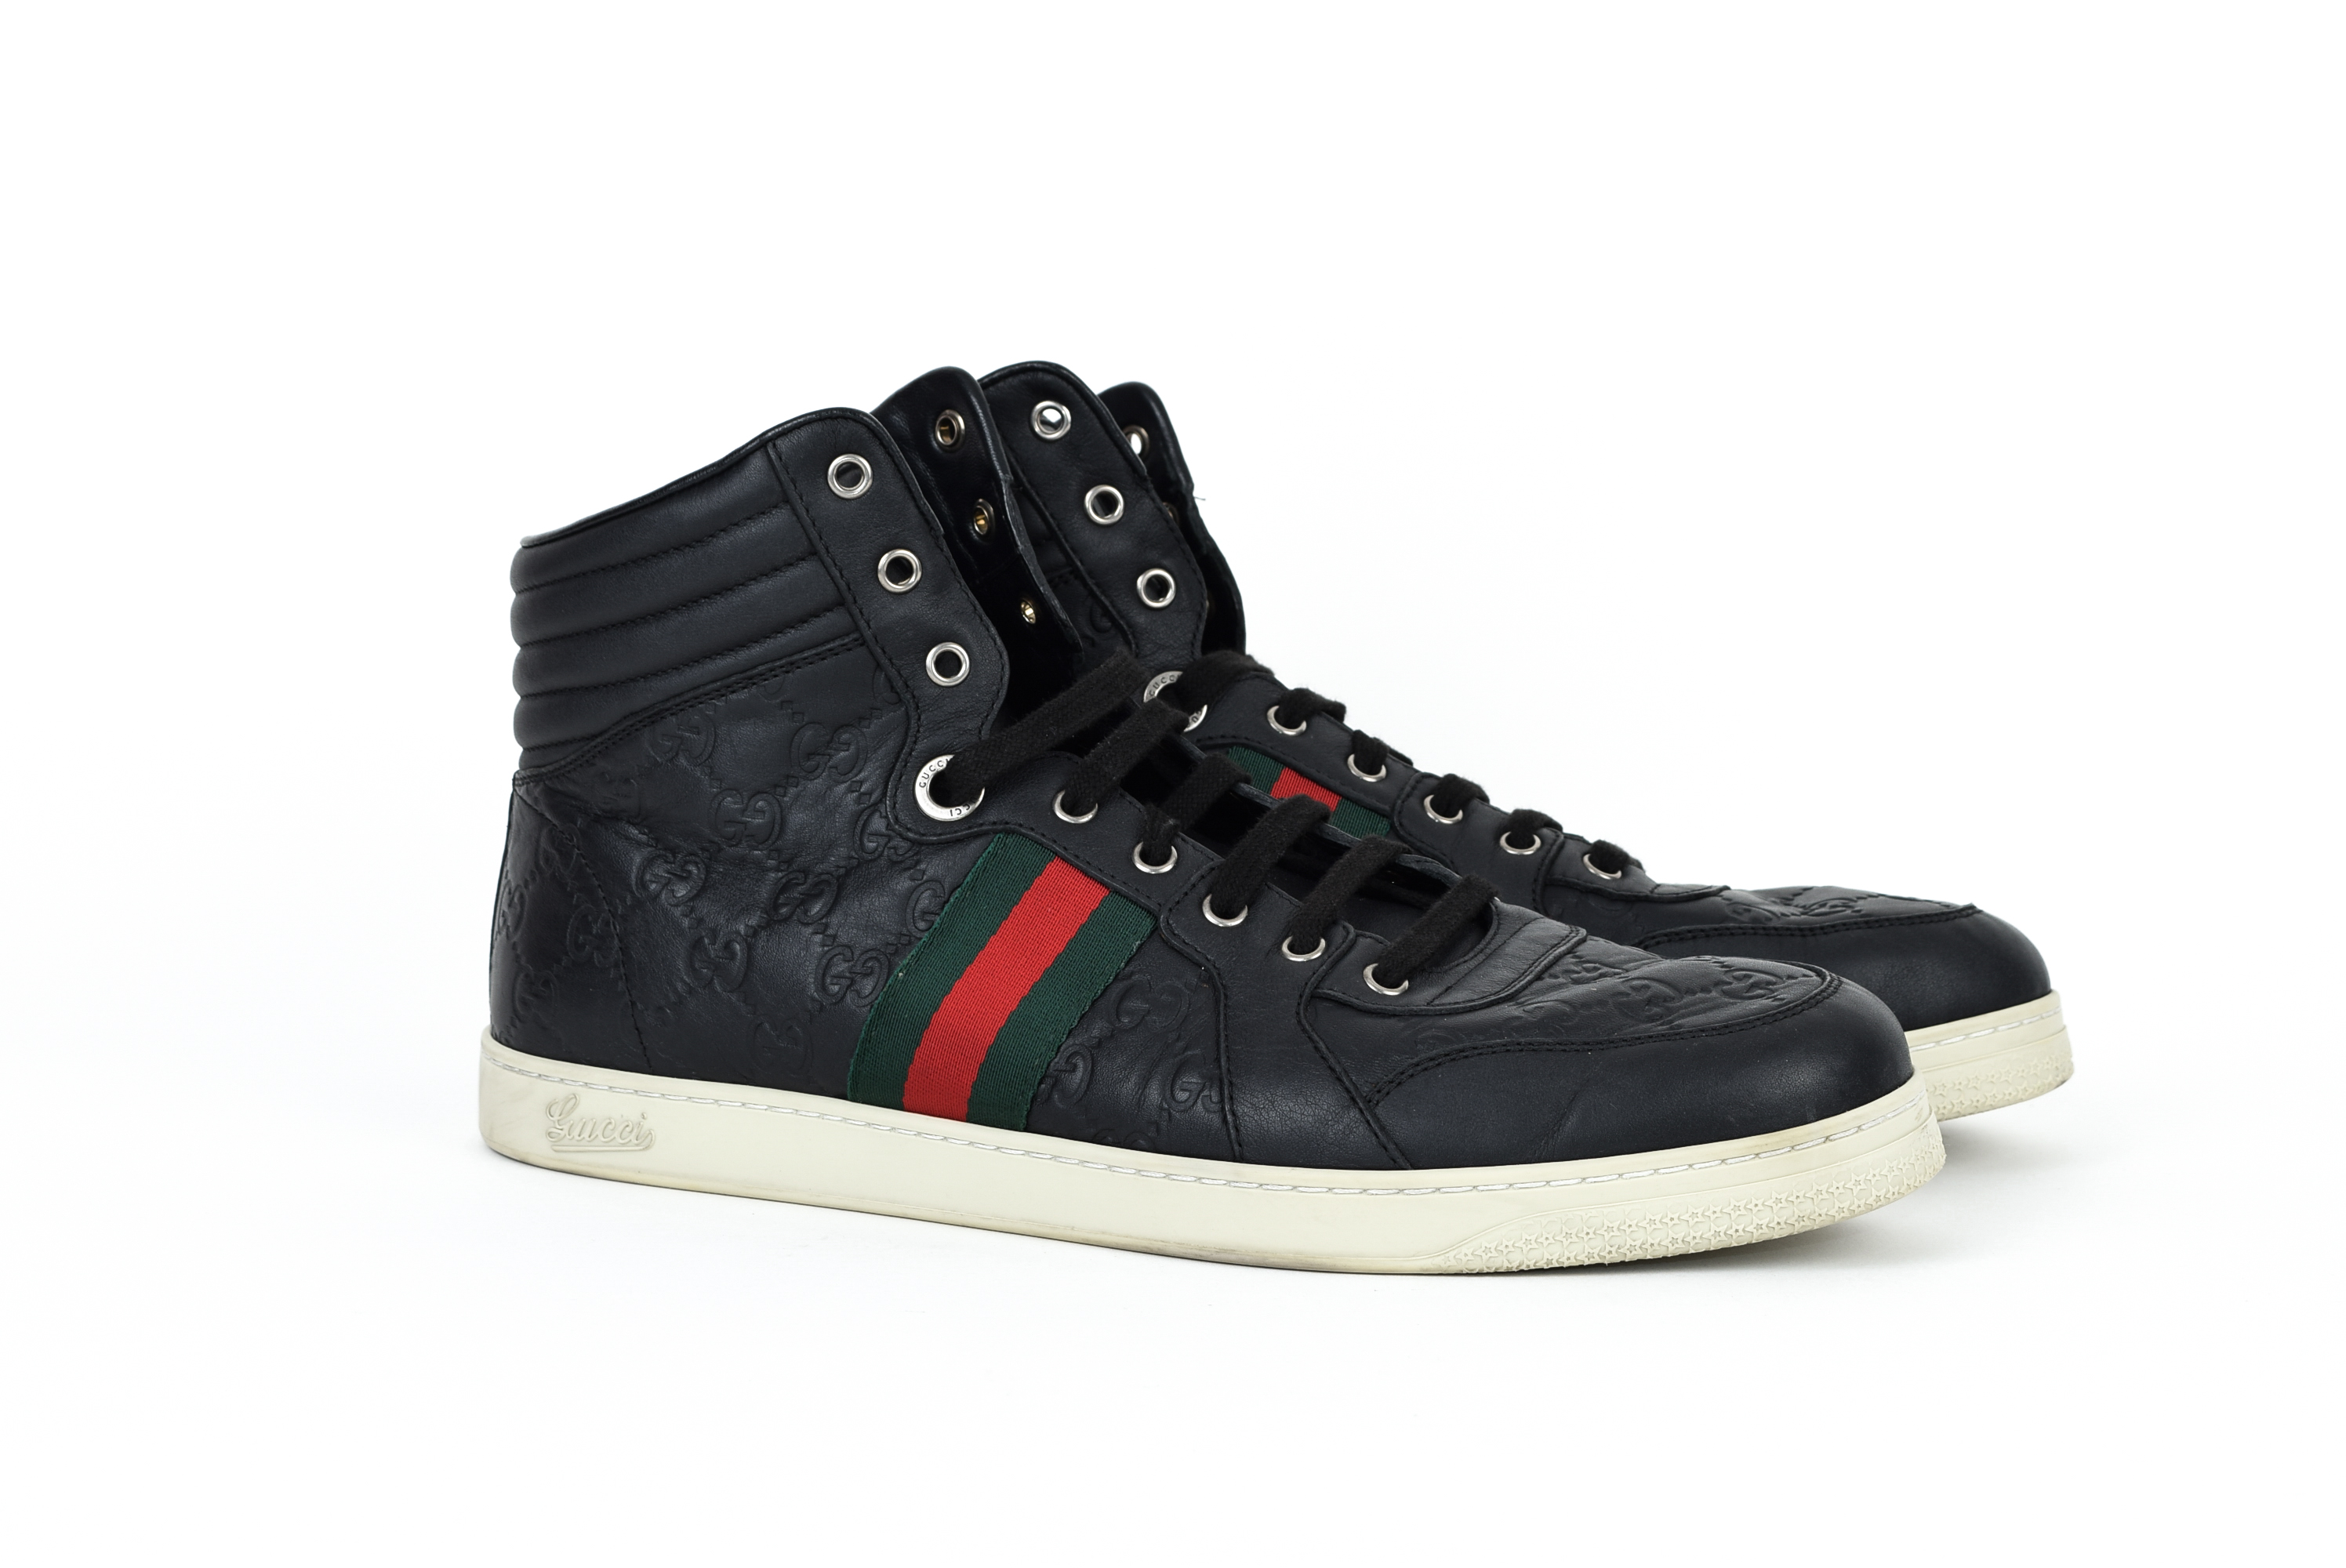 cd54659f7 Gucci ×. Gucci Guccissima High Top Sneakers Shoes Red Green Web Stripe GG  Monogram Logo Leather Black ...